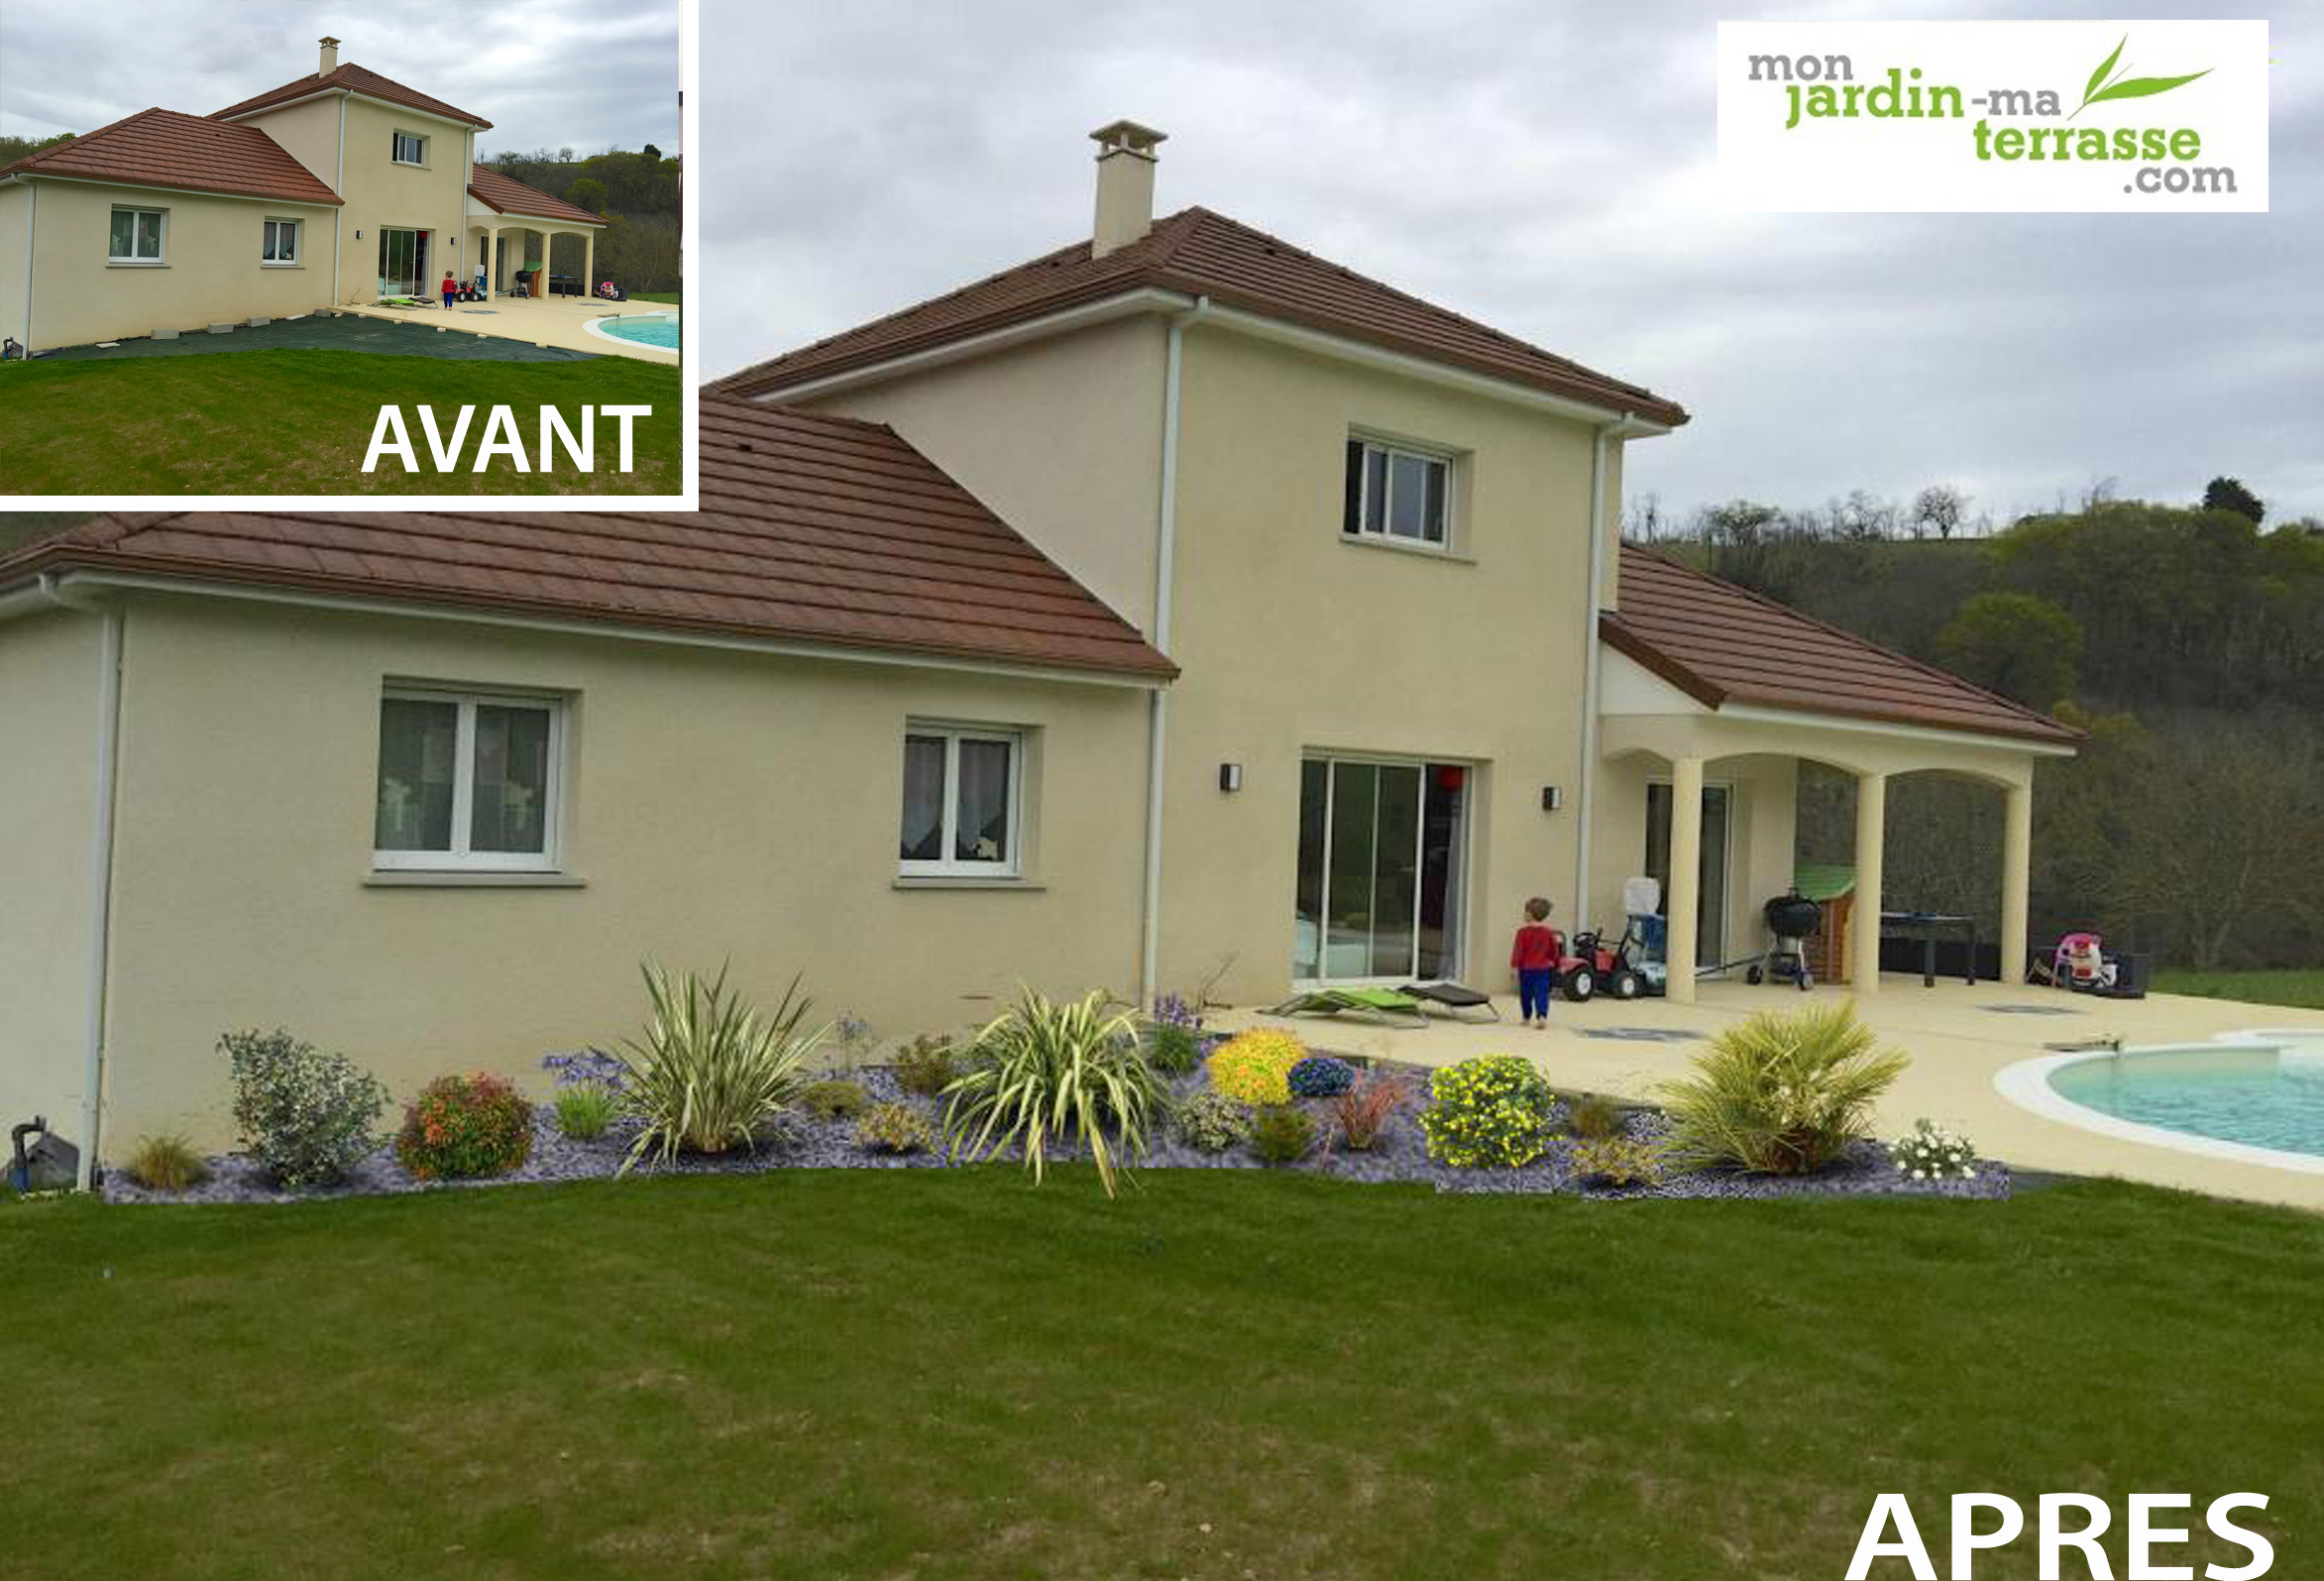 Am nagement ext rieur devant une maison monjardin for Exterieur amenagement